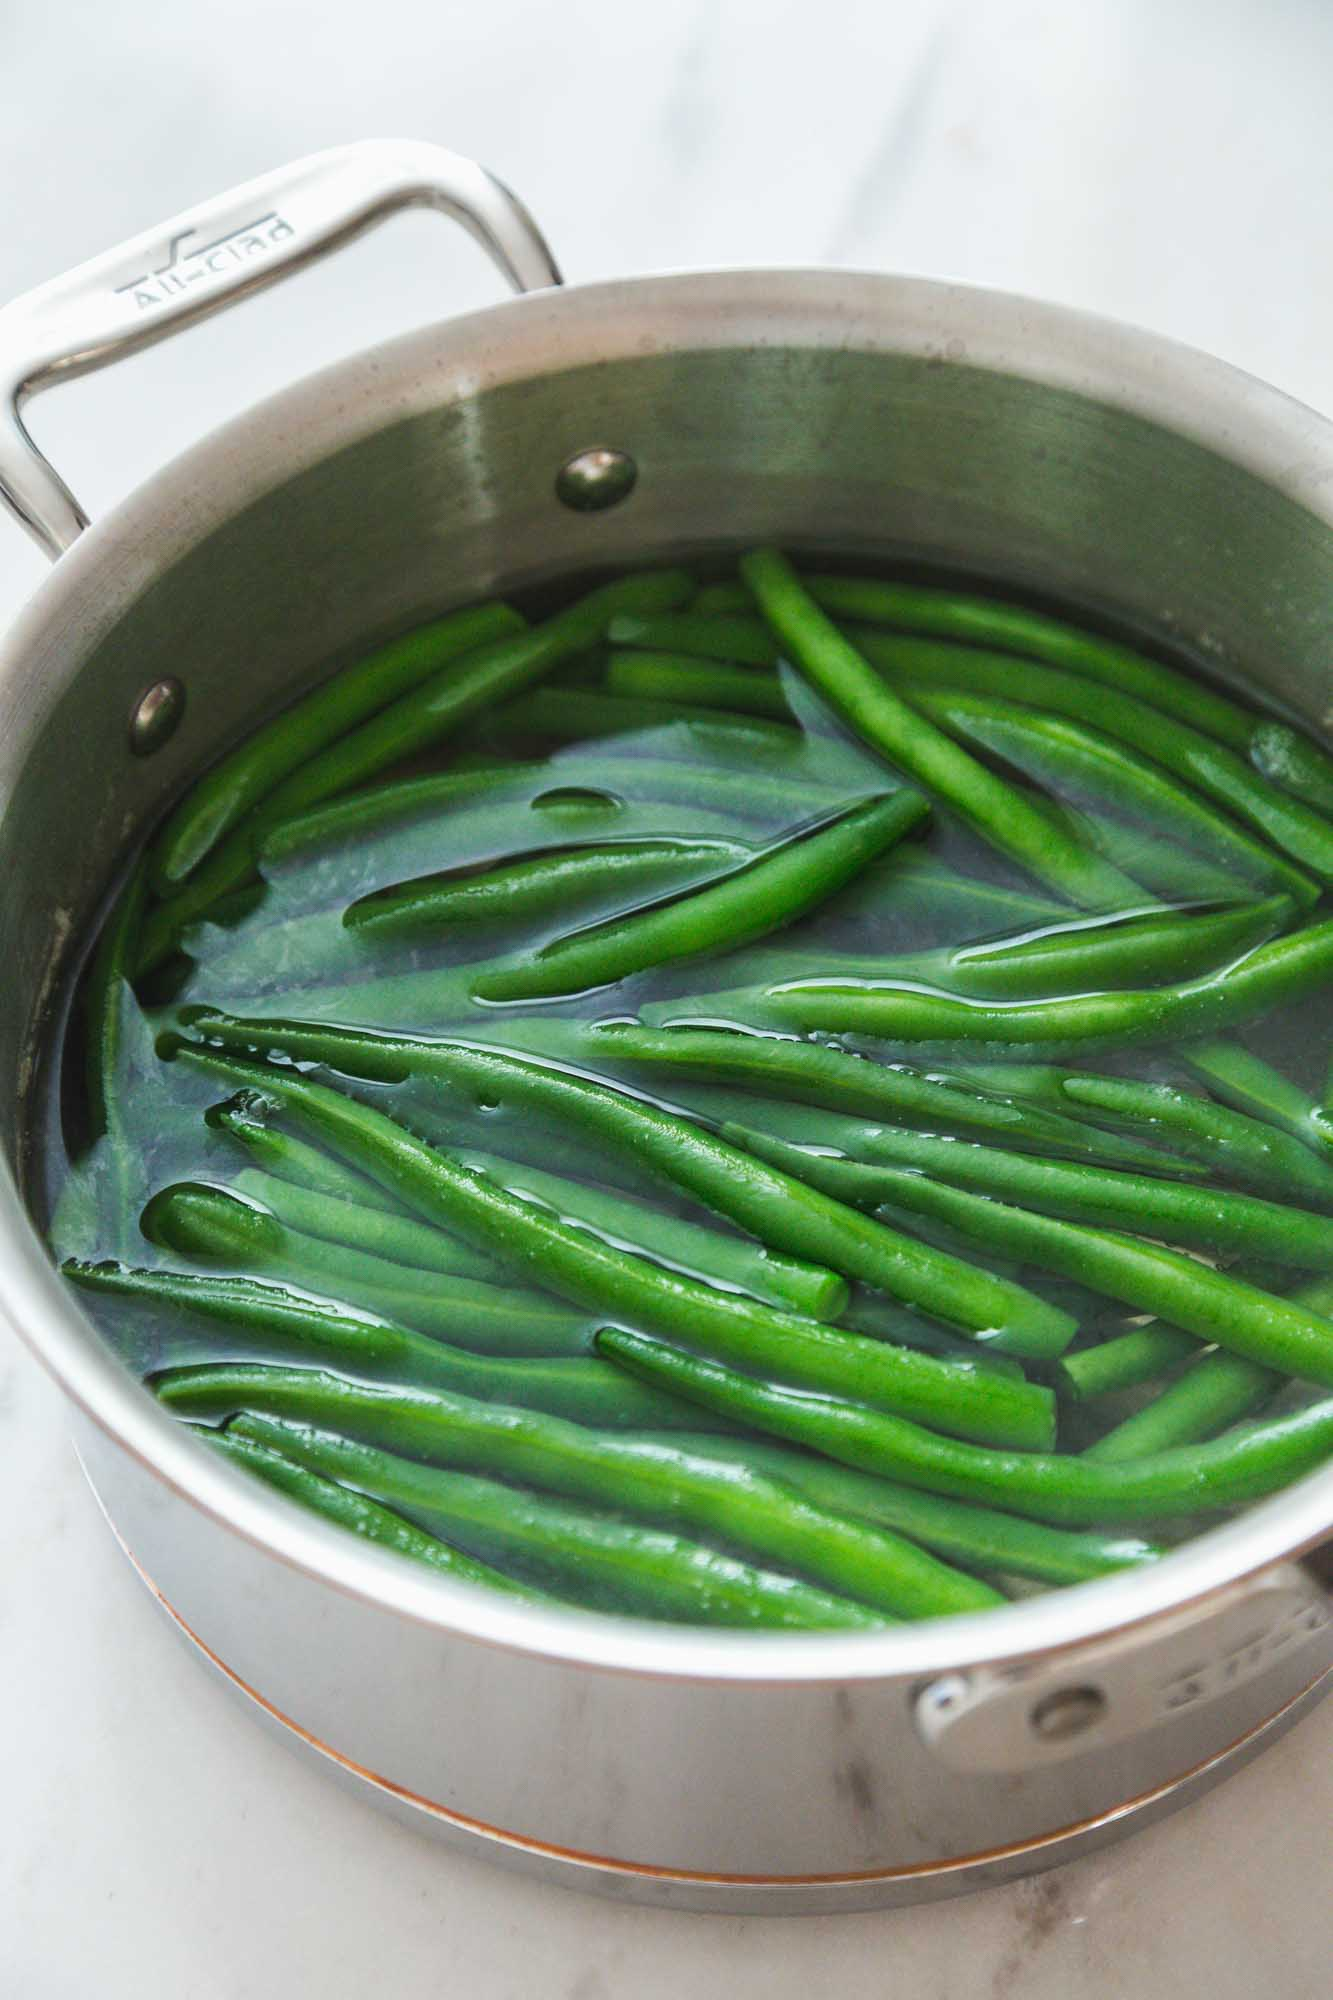 Green beans in a saucepan with water